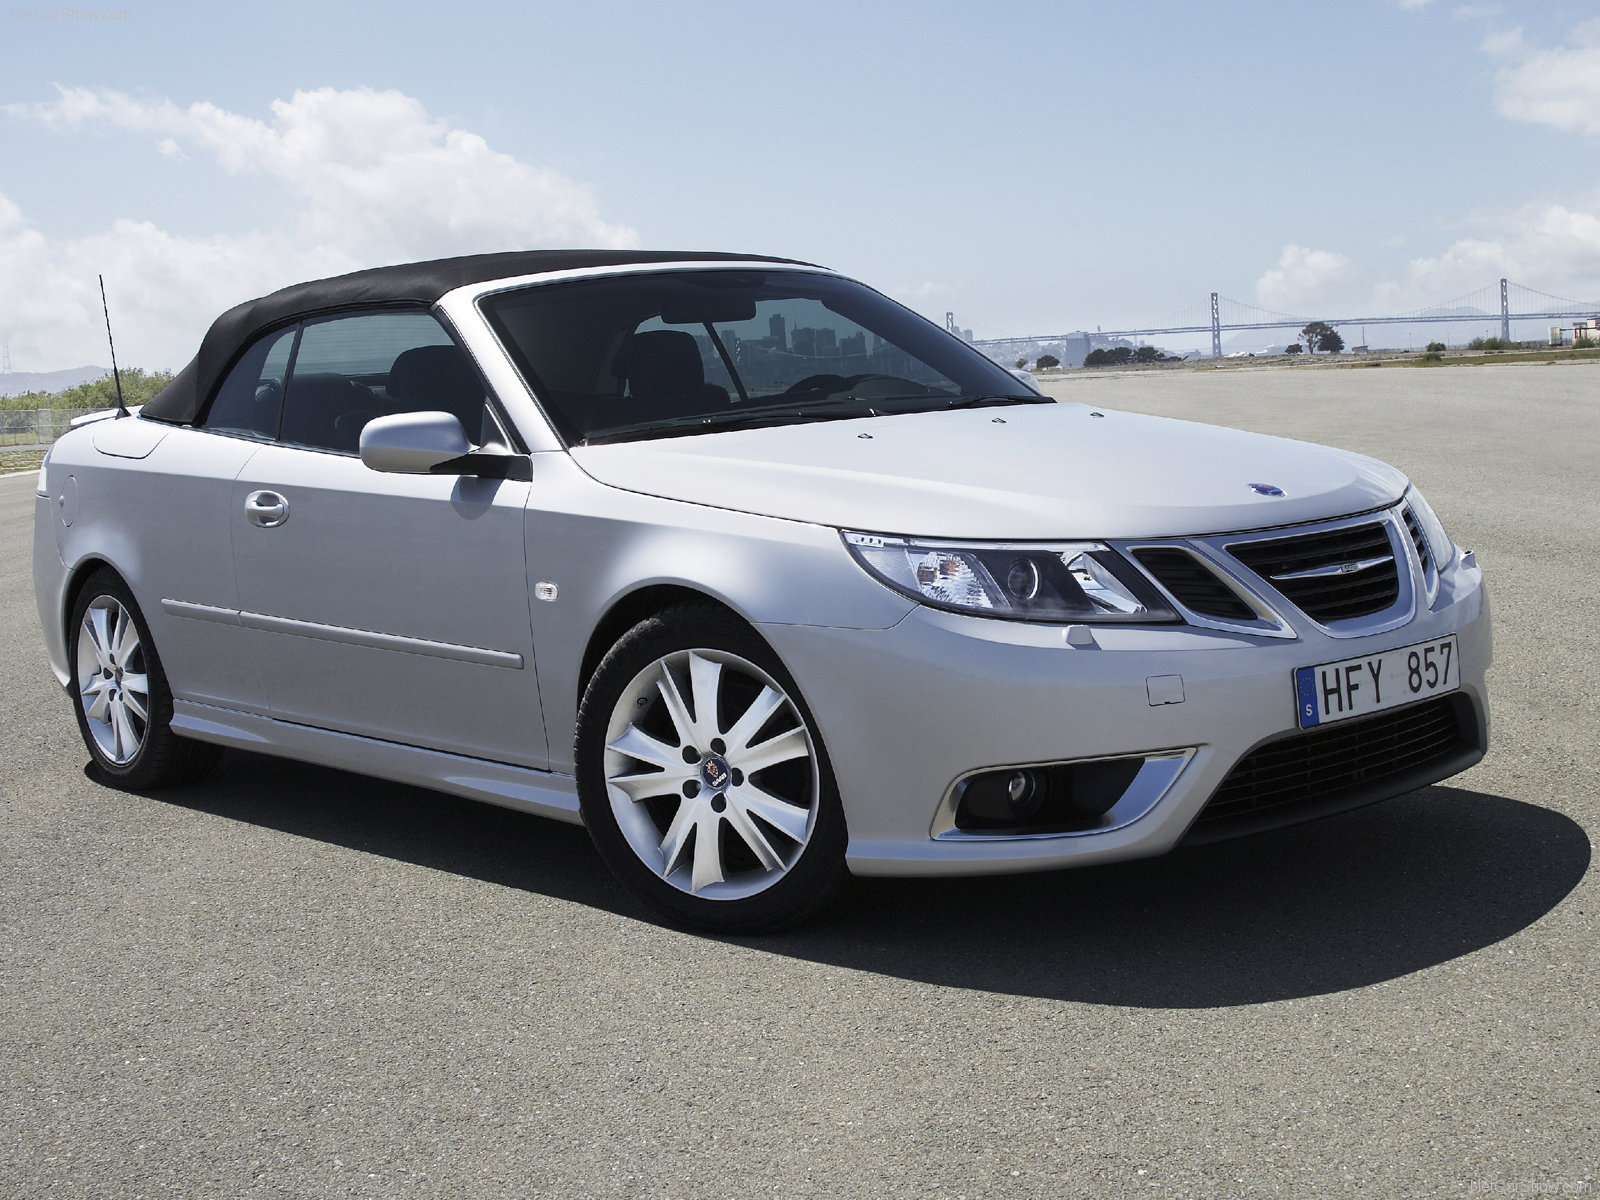 saab 9 3 convertible photos photogallery with 15 pics. Black Bedroom Furniture Sets. Home Design Ideas